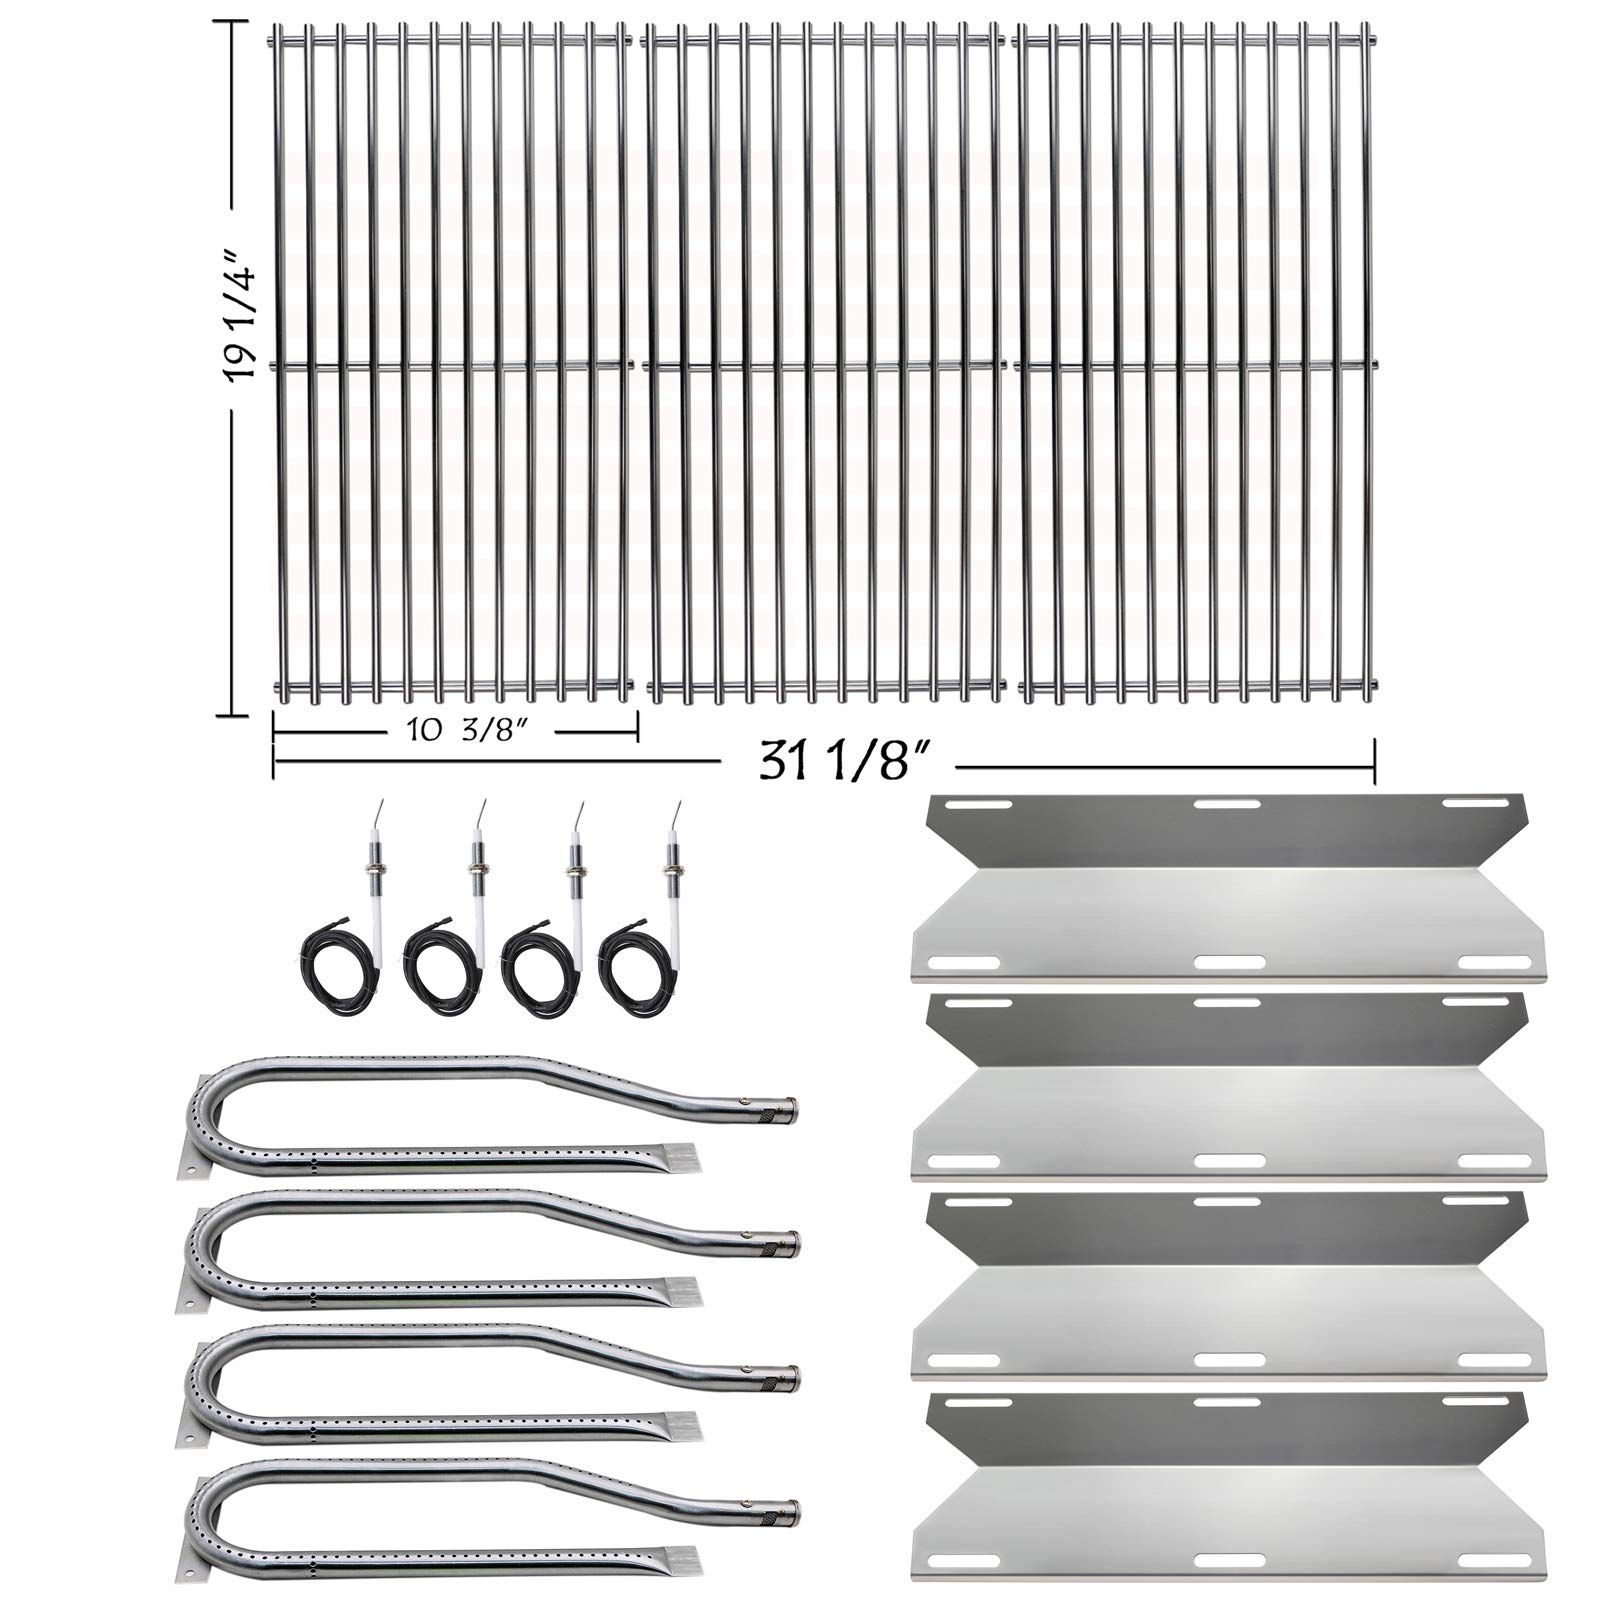 Hisencn Repair kit Replacement for Jenn Air 720-0337, 7200337, 720 0337 Gas Grill Model, 4pack Stainless Steel Burners Pipe Tube, Heat Plates Sheild Tent, Set of 3 Grill Cooking Grid Grates by Hisencn